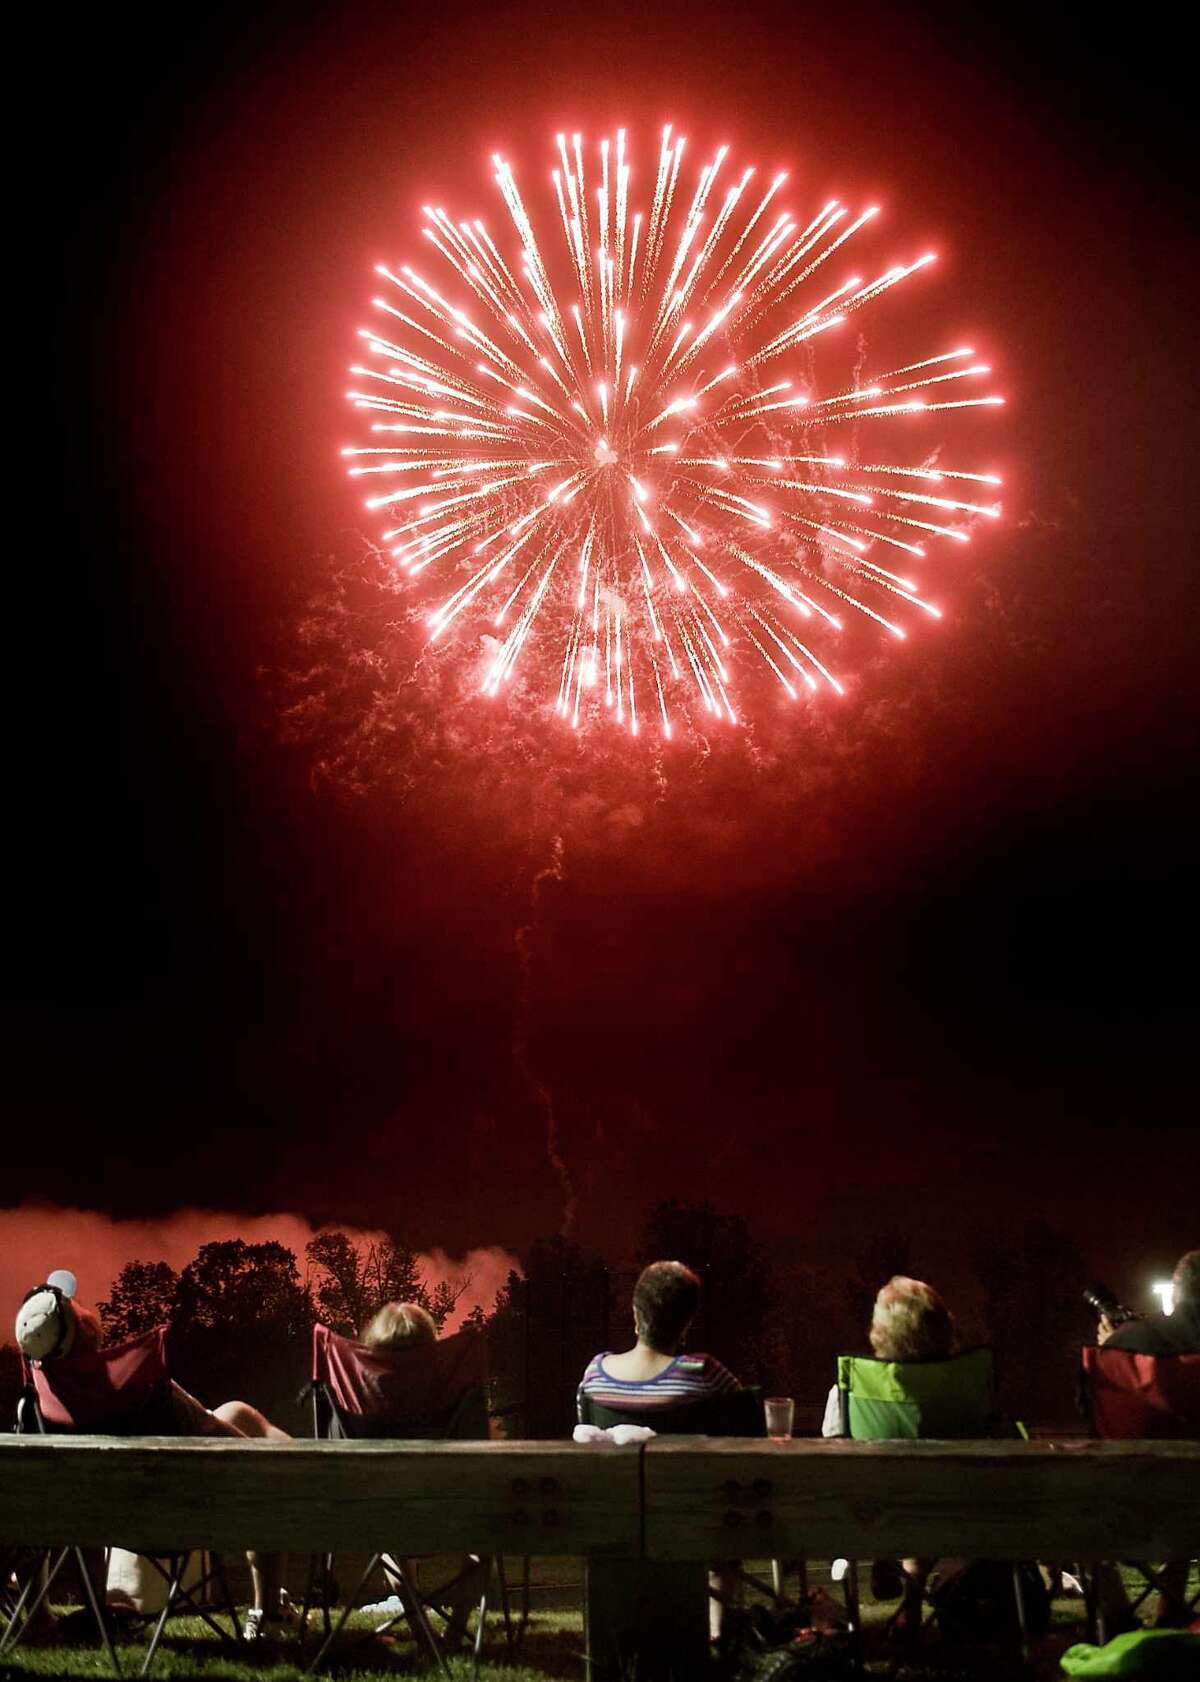 Spectators enjoy the Fourth of July fireworks at Ridgefield High School on Wednesday, July 4, 2018.